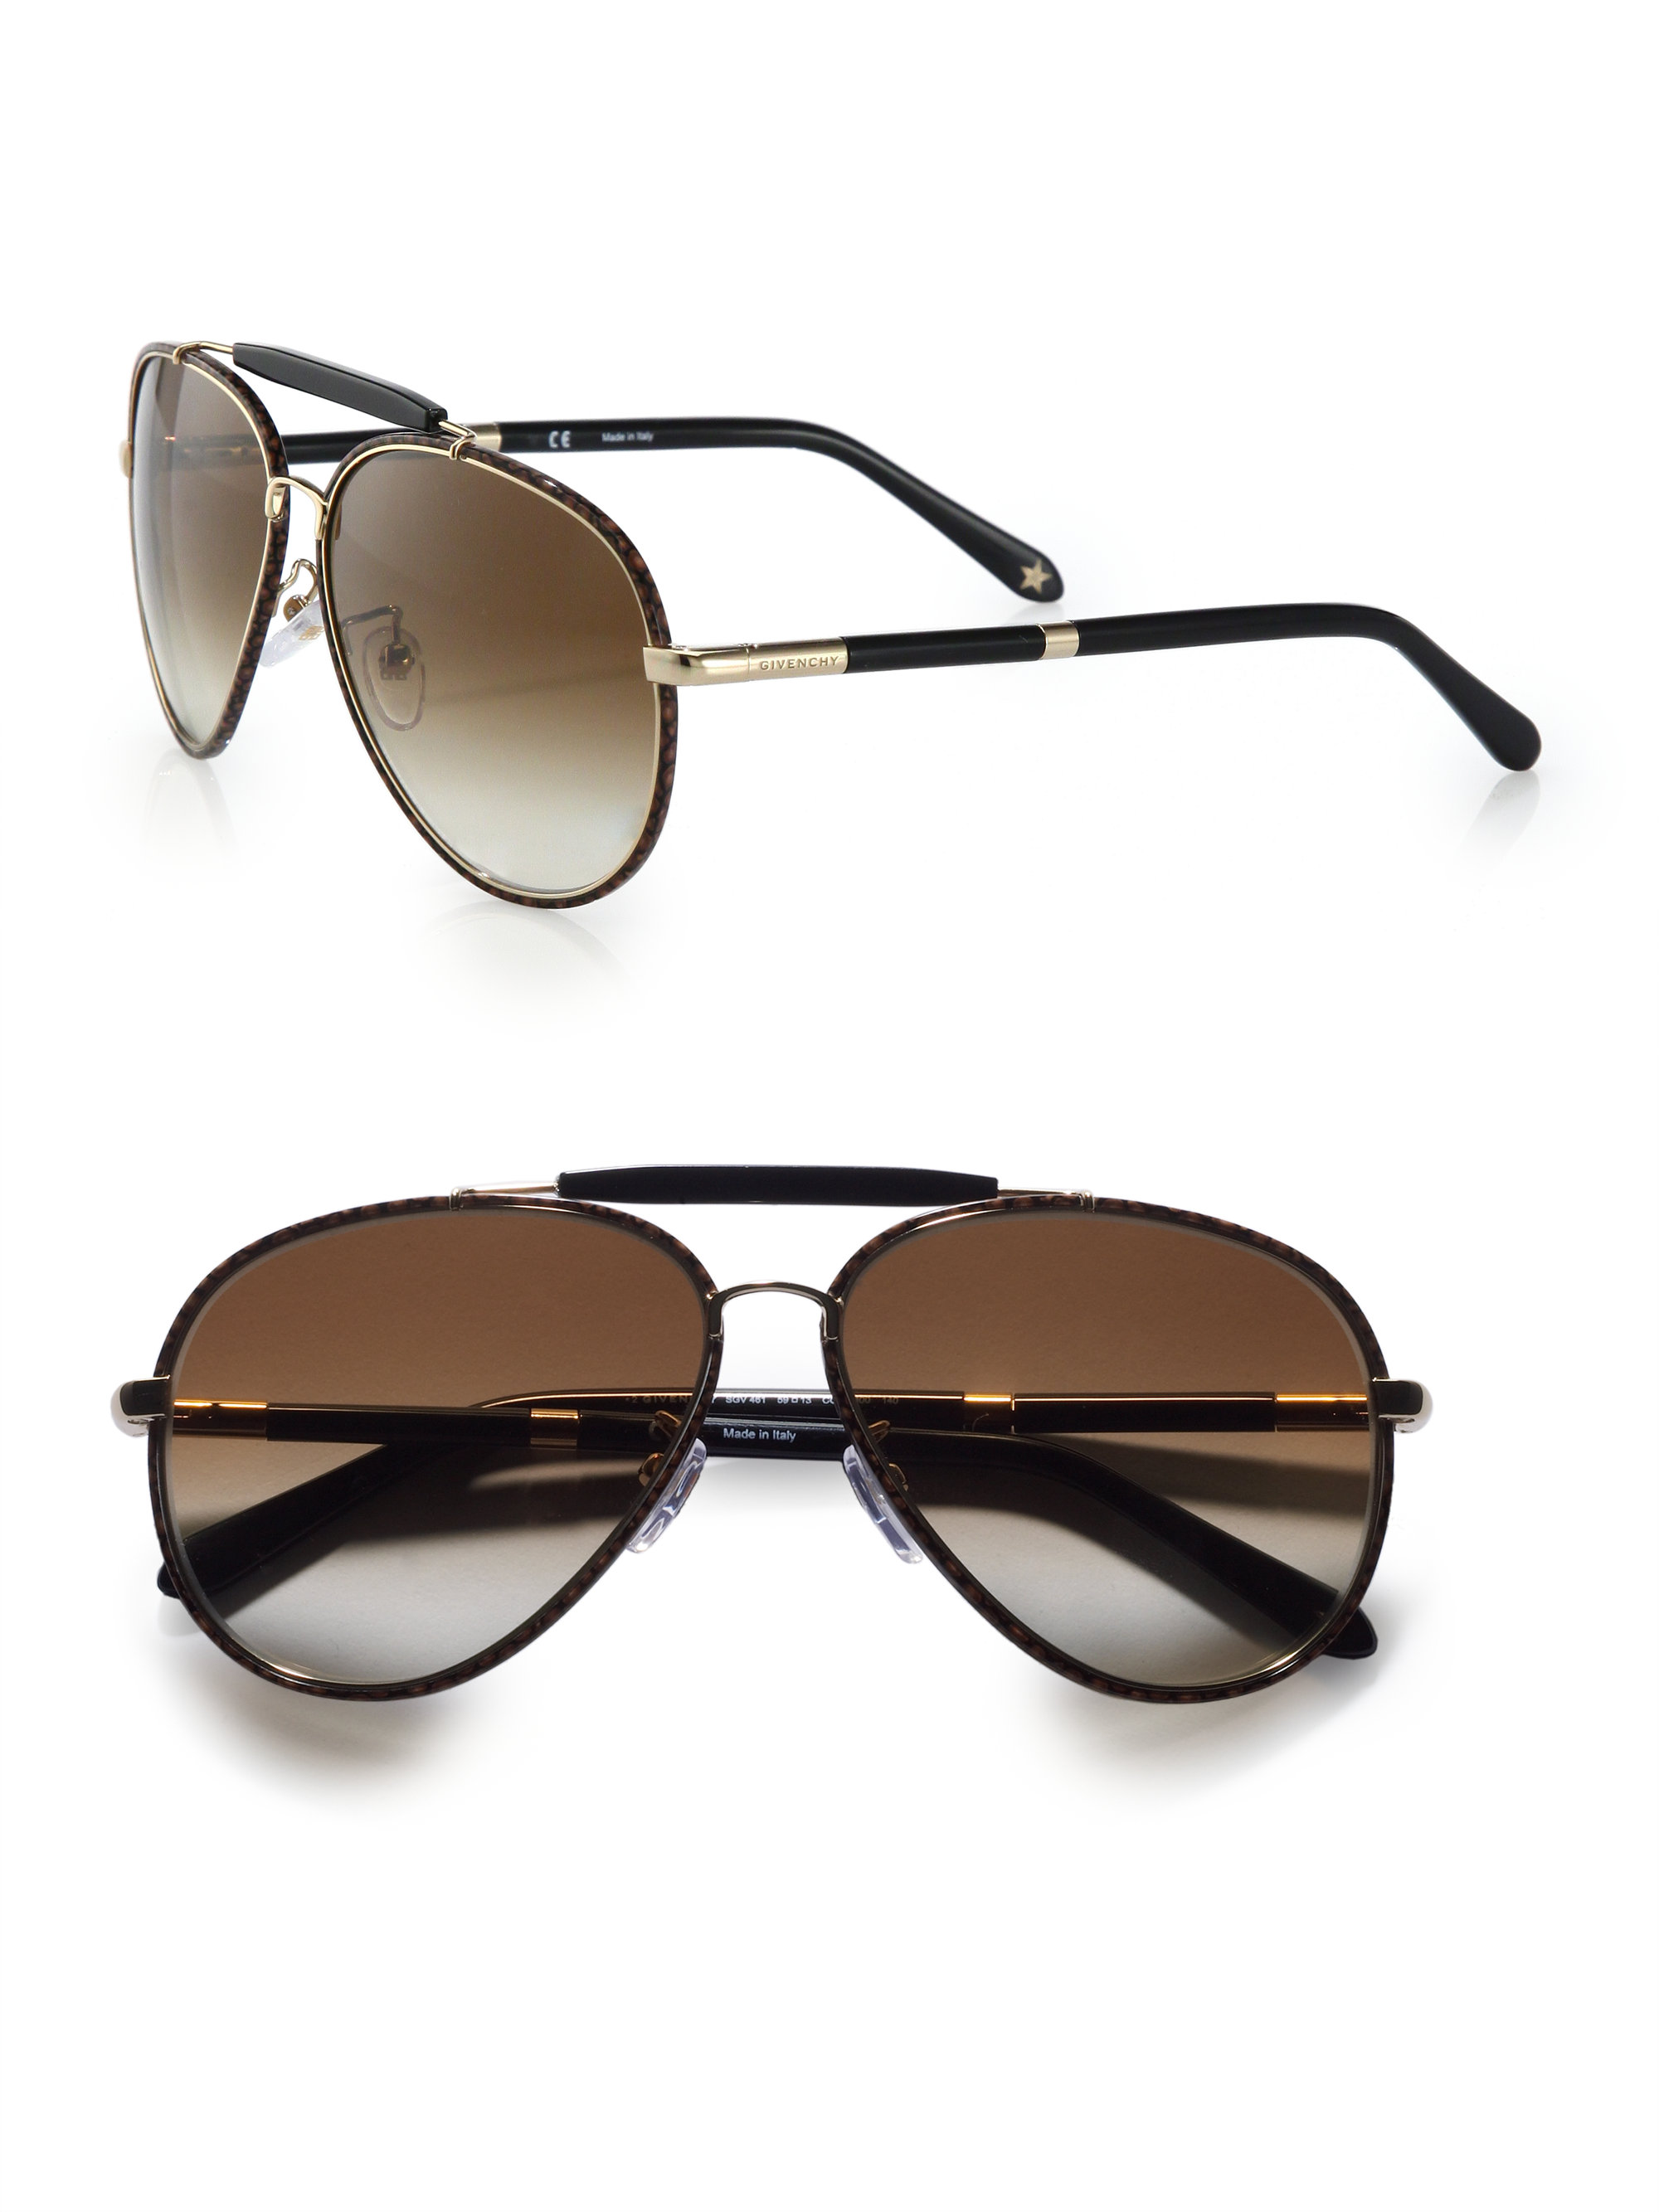 1316985ed0c Lyst - Givenchy Metal Aviator Sunglasses in Brown for Men